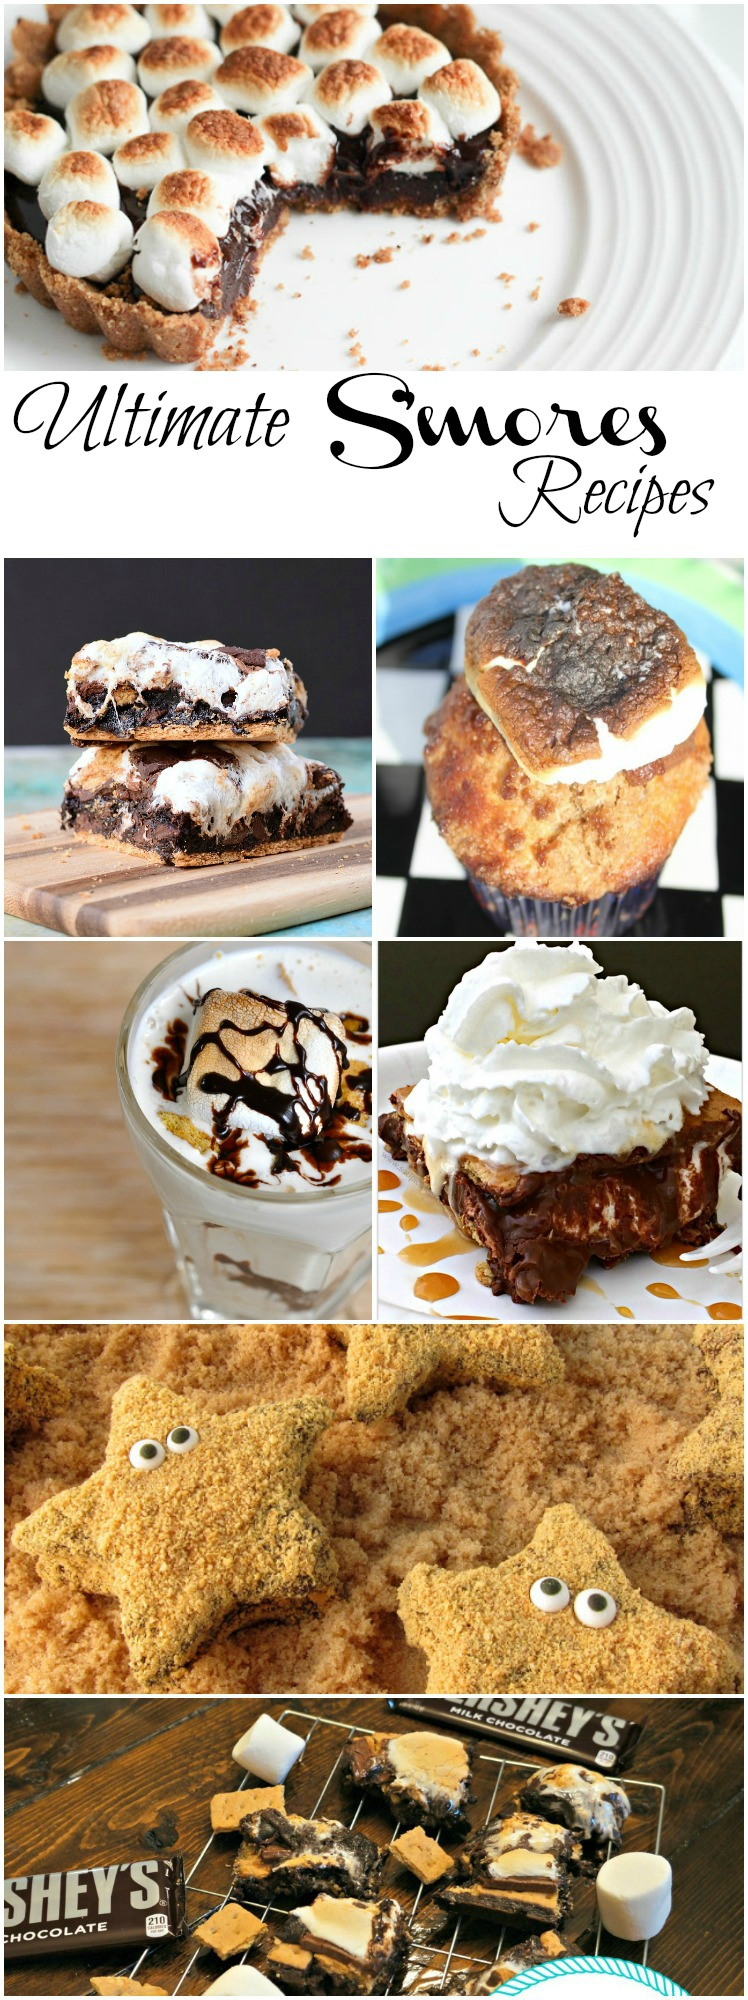 Ultimate S'mores Recipes collected by The Melrose Family